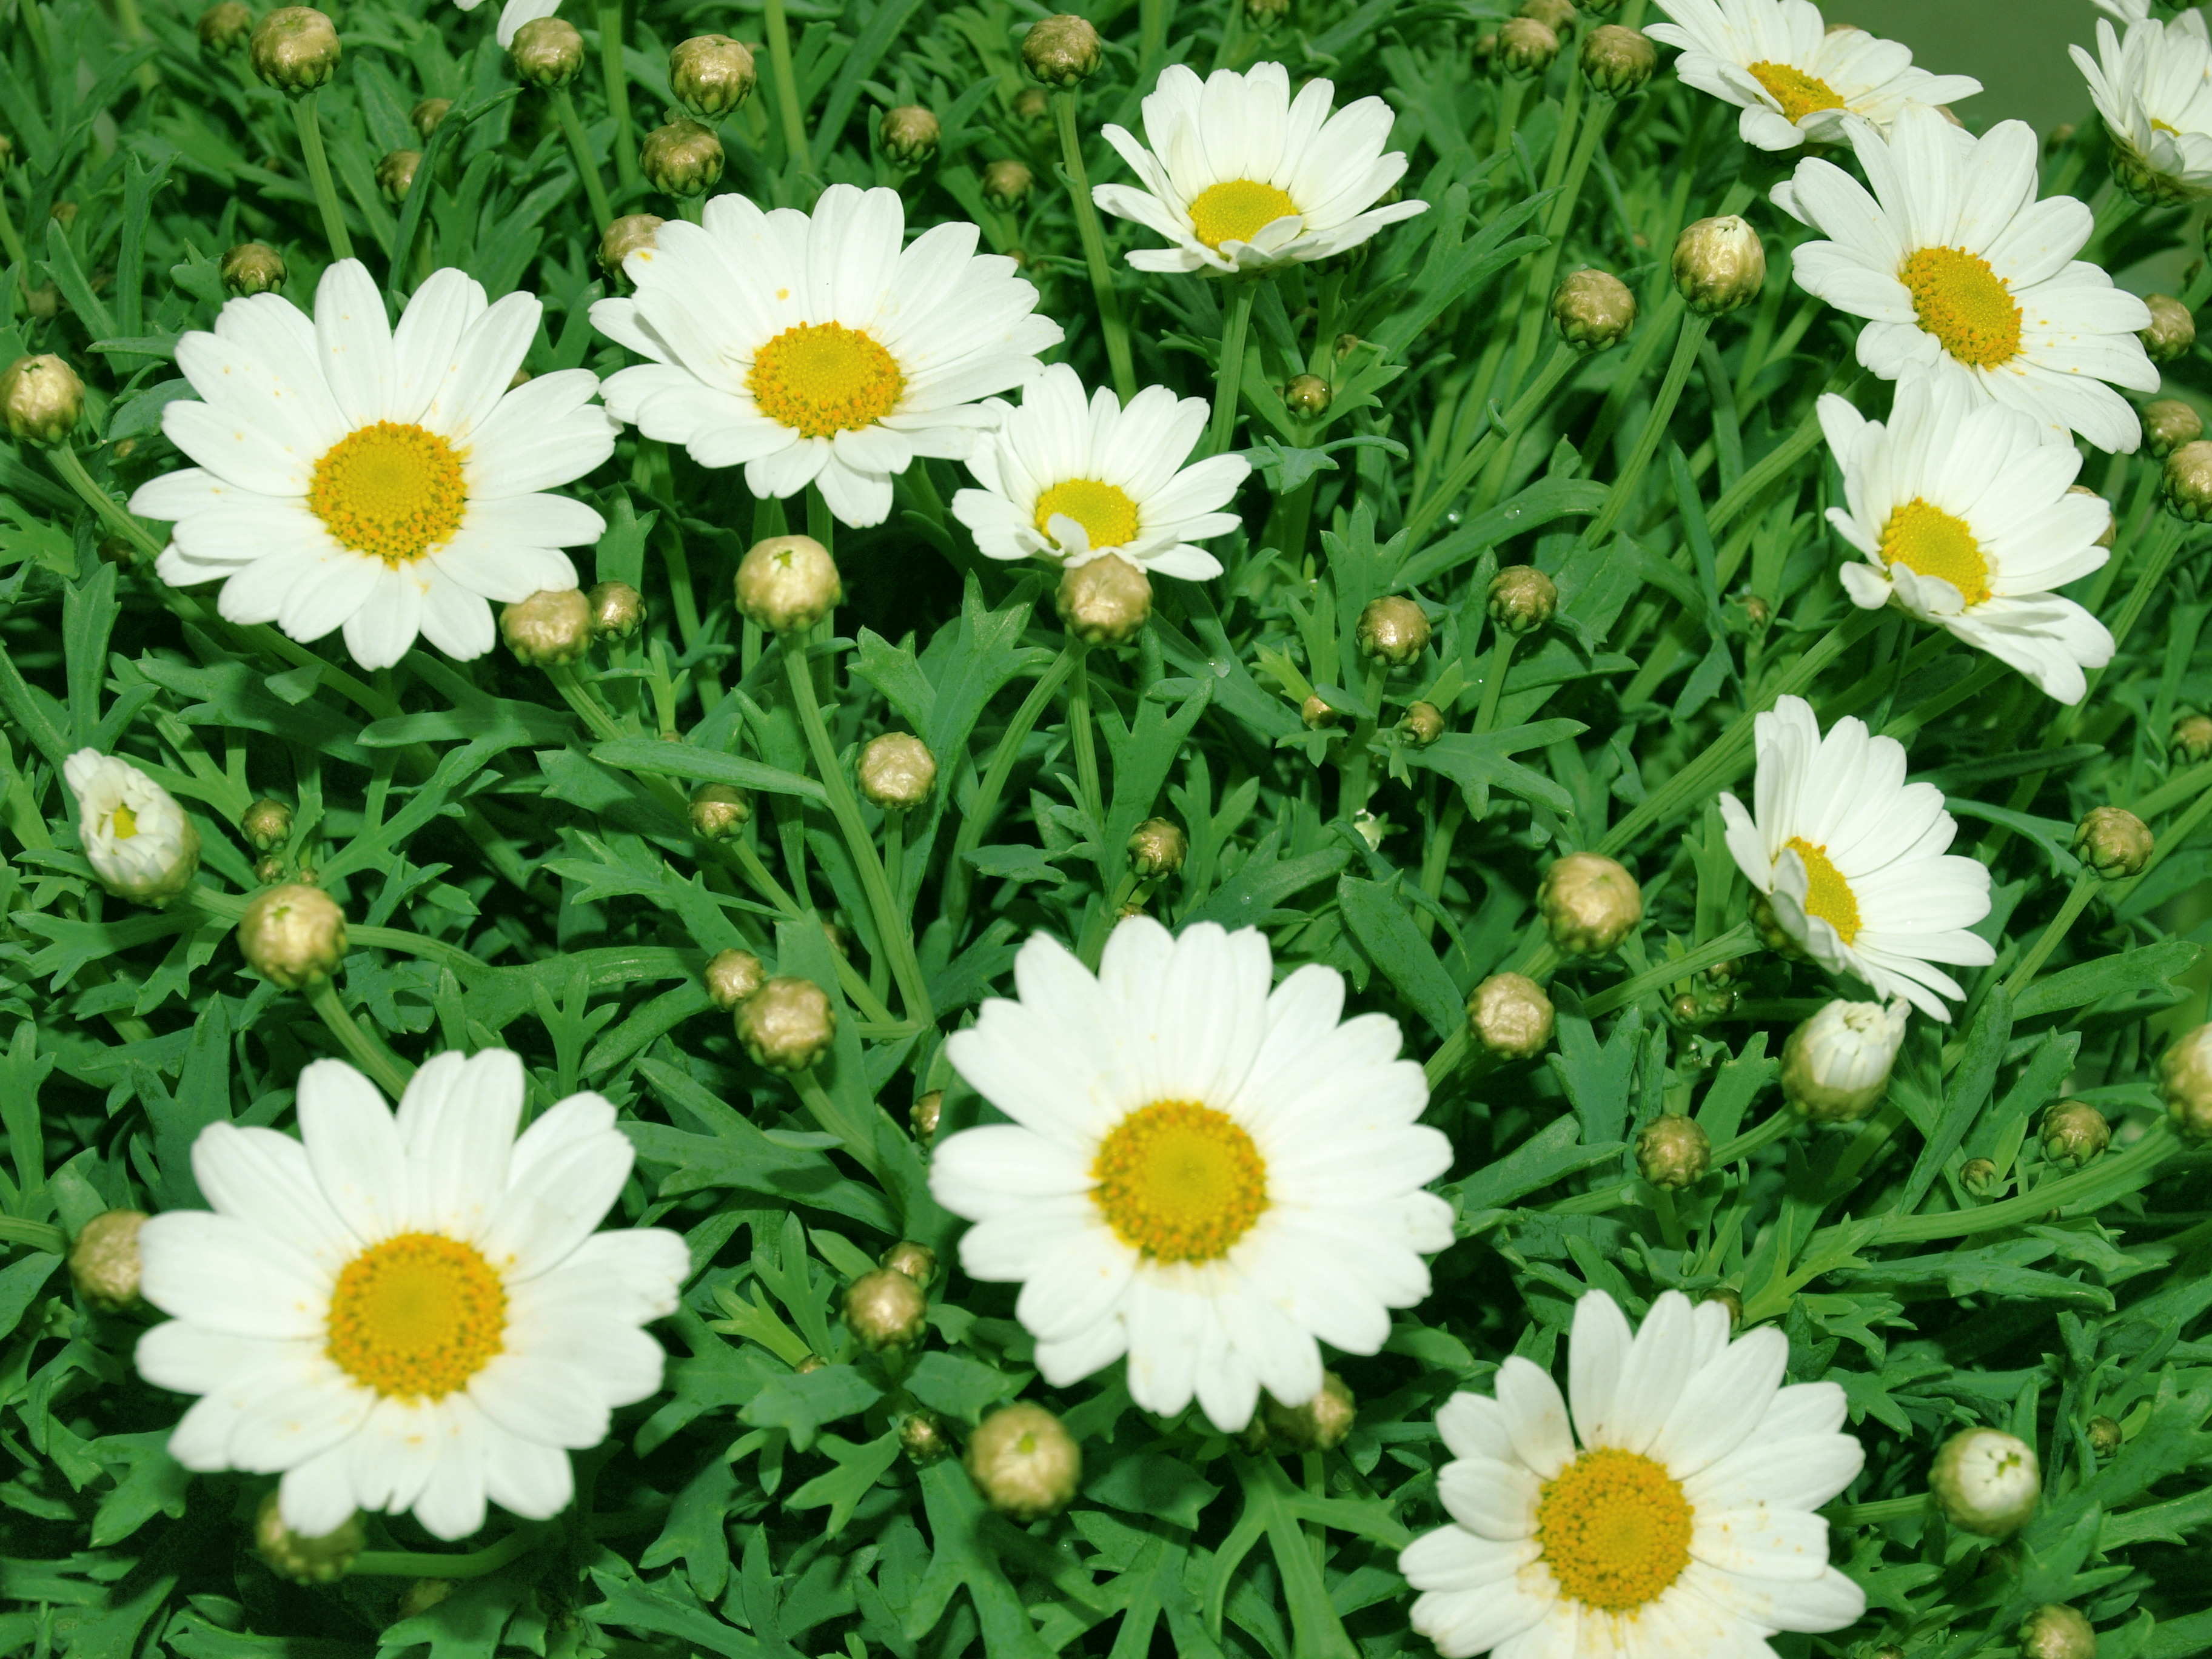 Plants nature Flowers Daisy HD Wallpaper